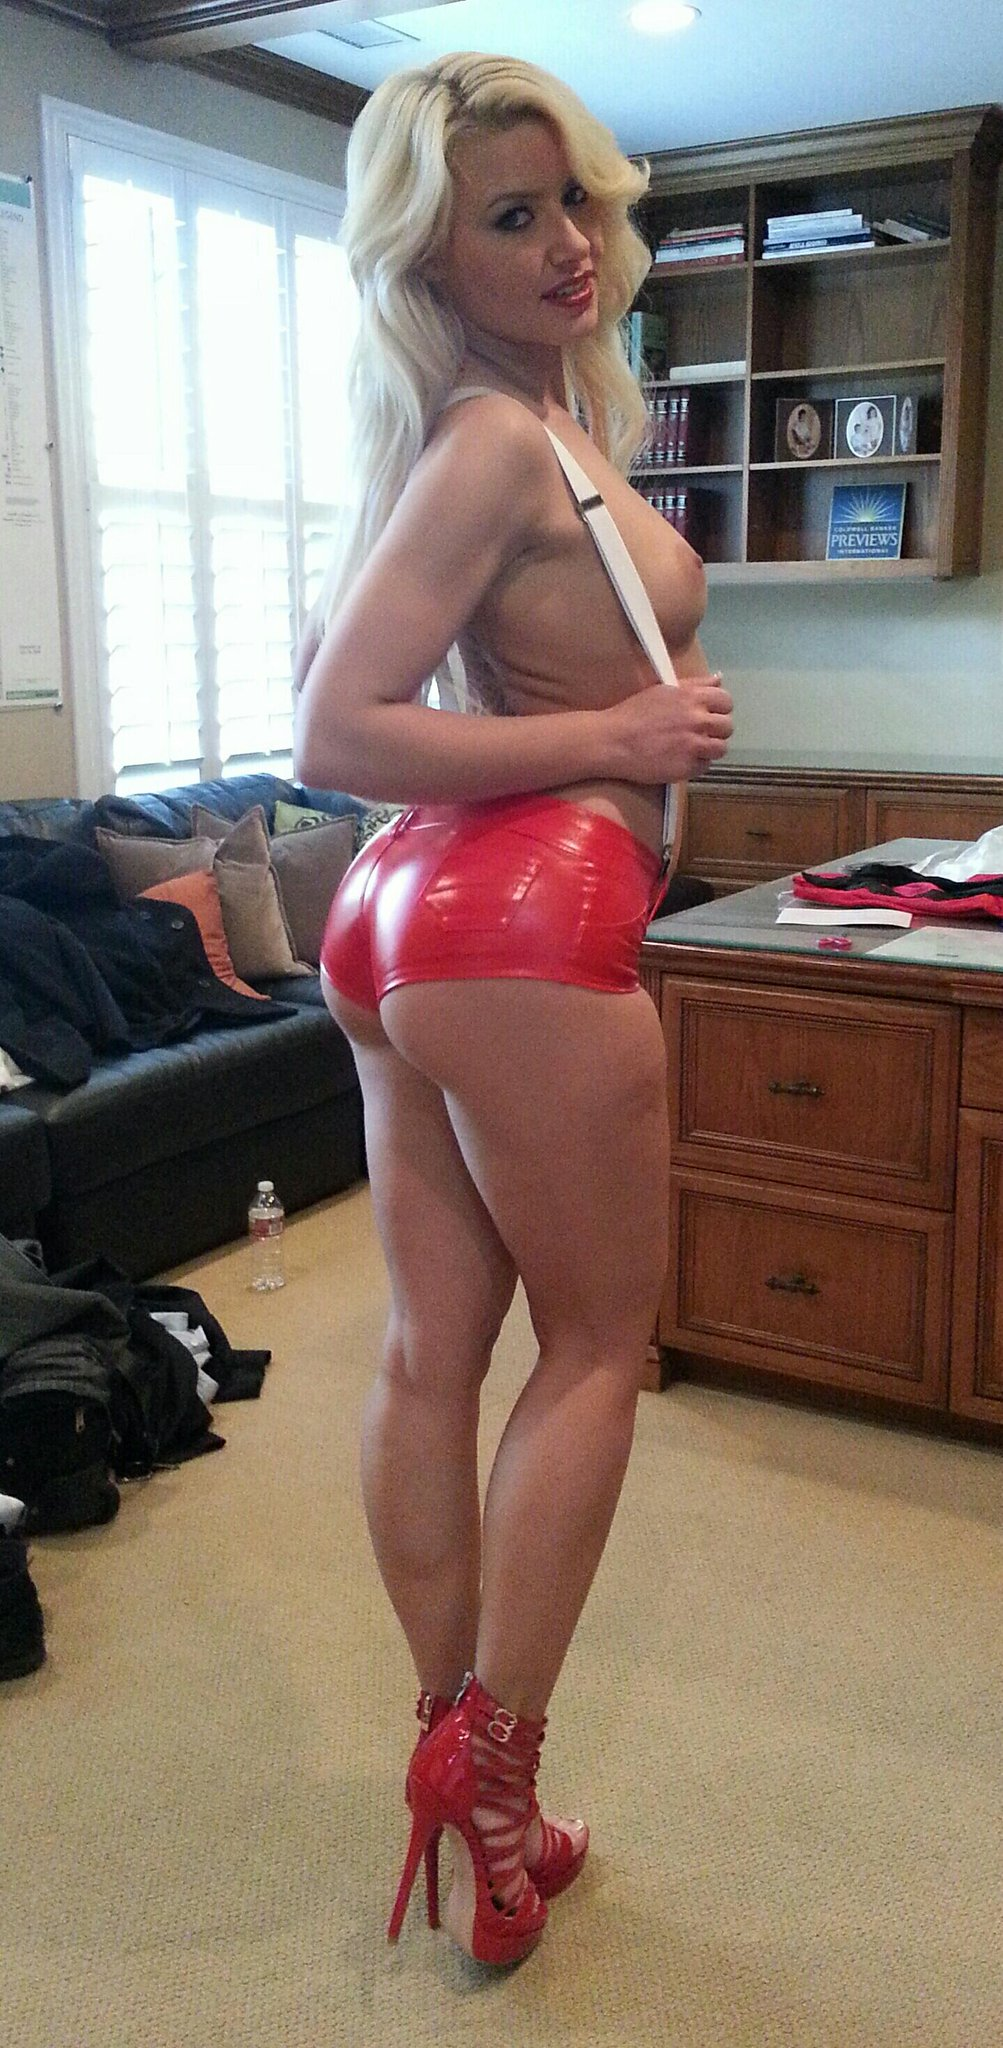 pawg - phat ass white girls - - page 328